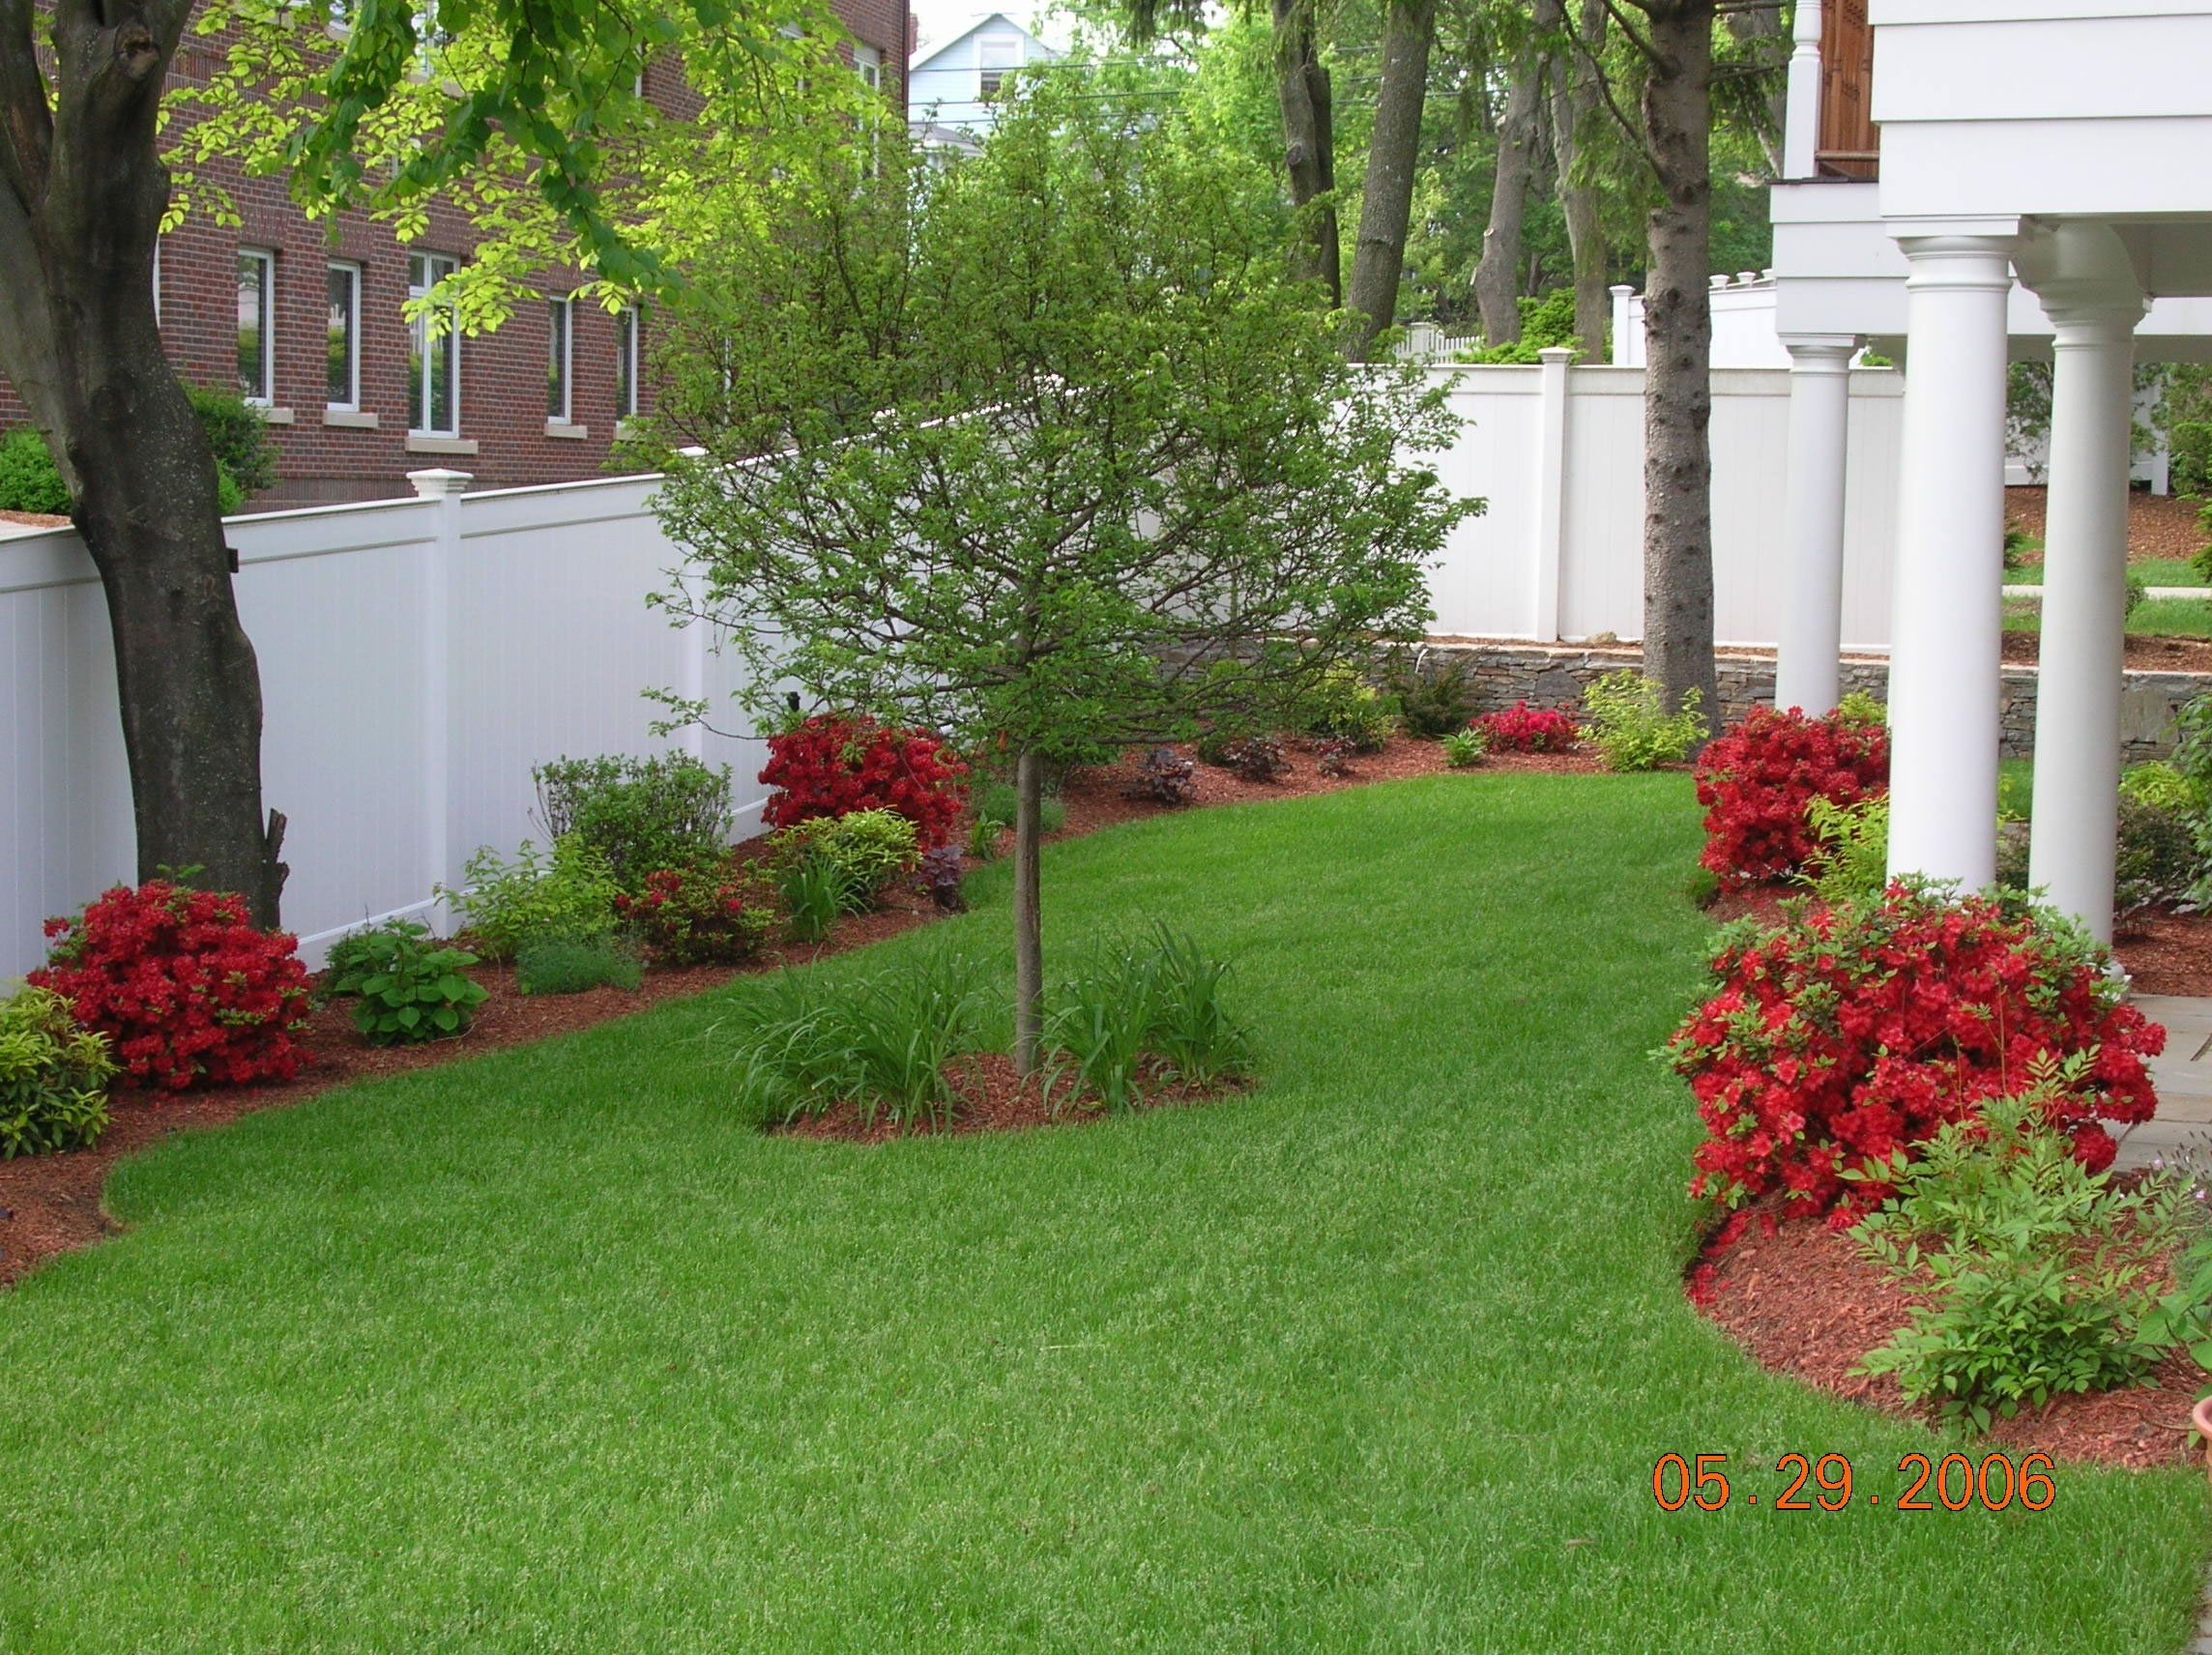 Top 10 simple diy landscaping ideas seek diy for Yard landscaping ideas